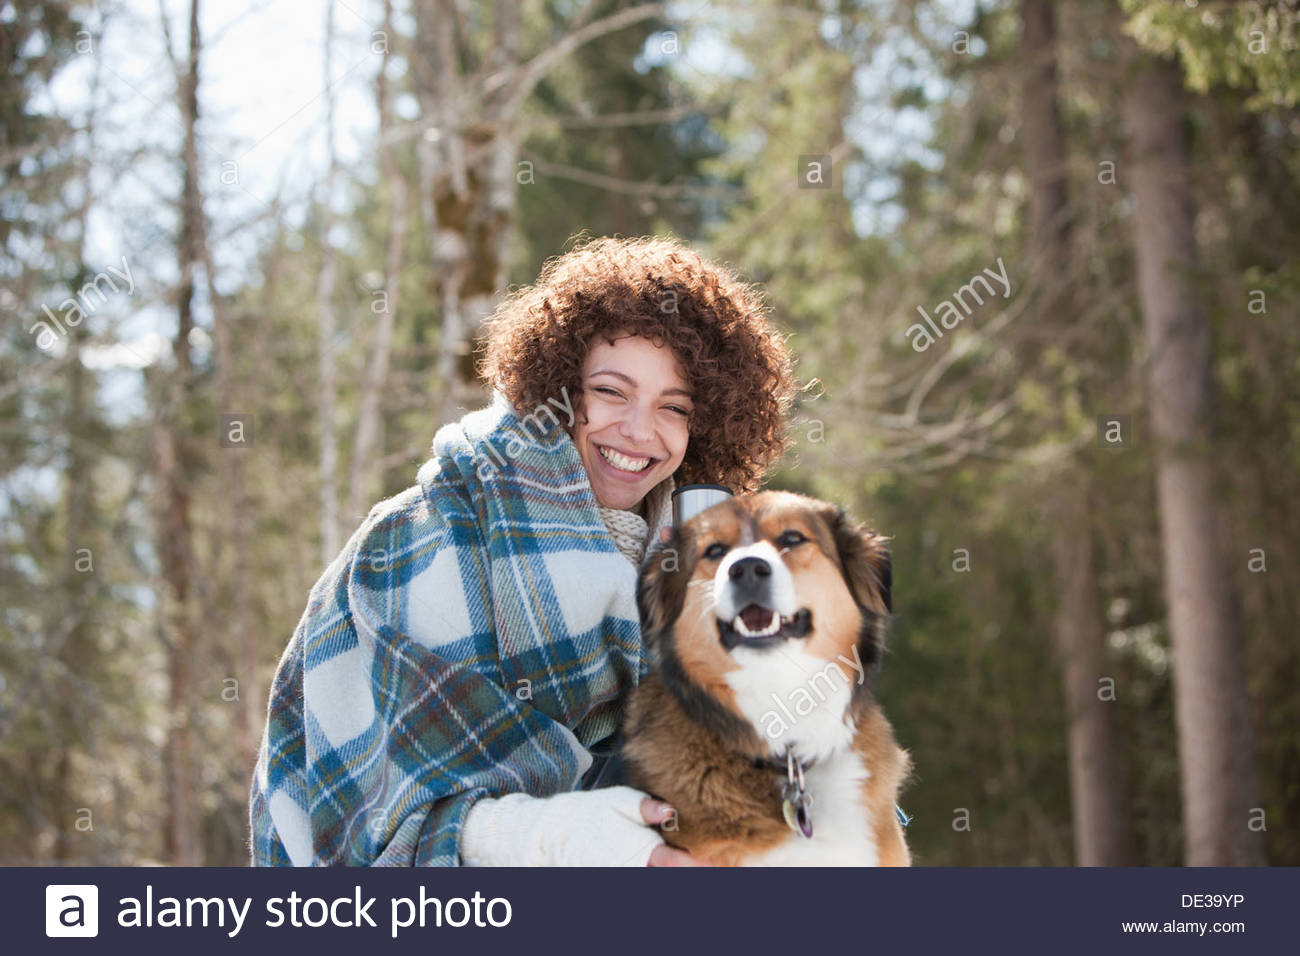 Woman and dog outdoors, winter - Stock Image